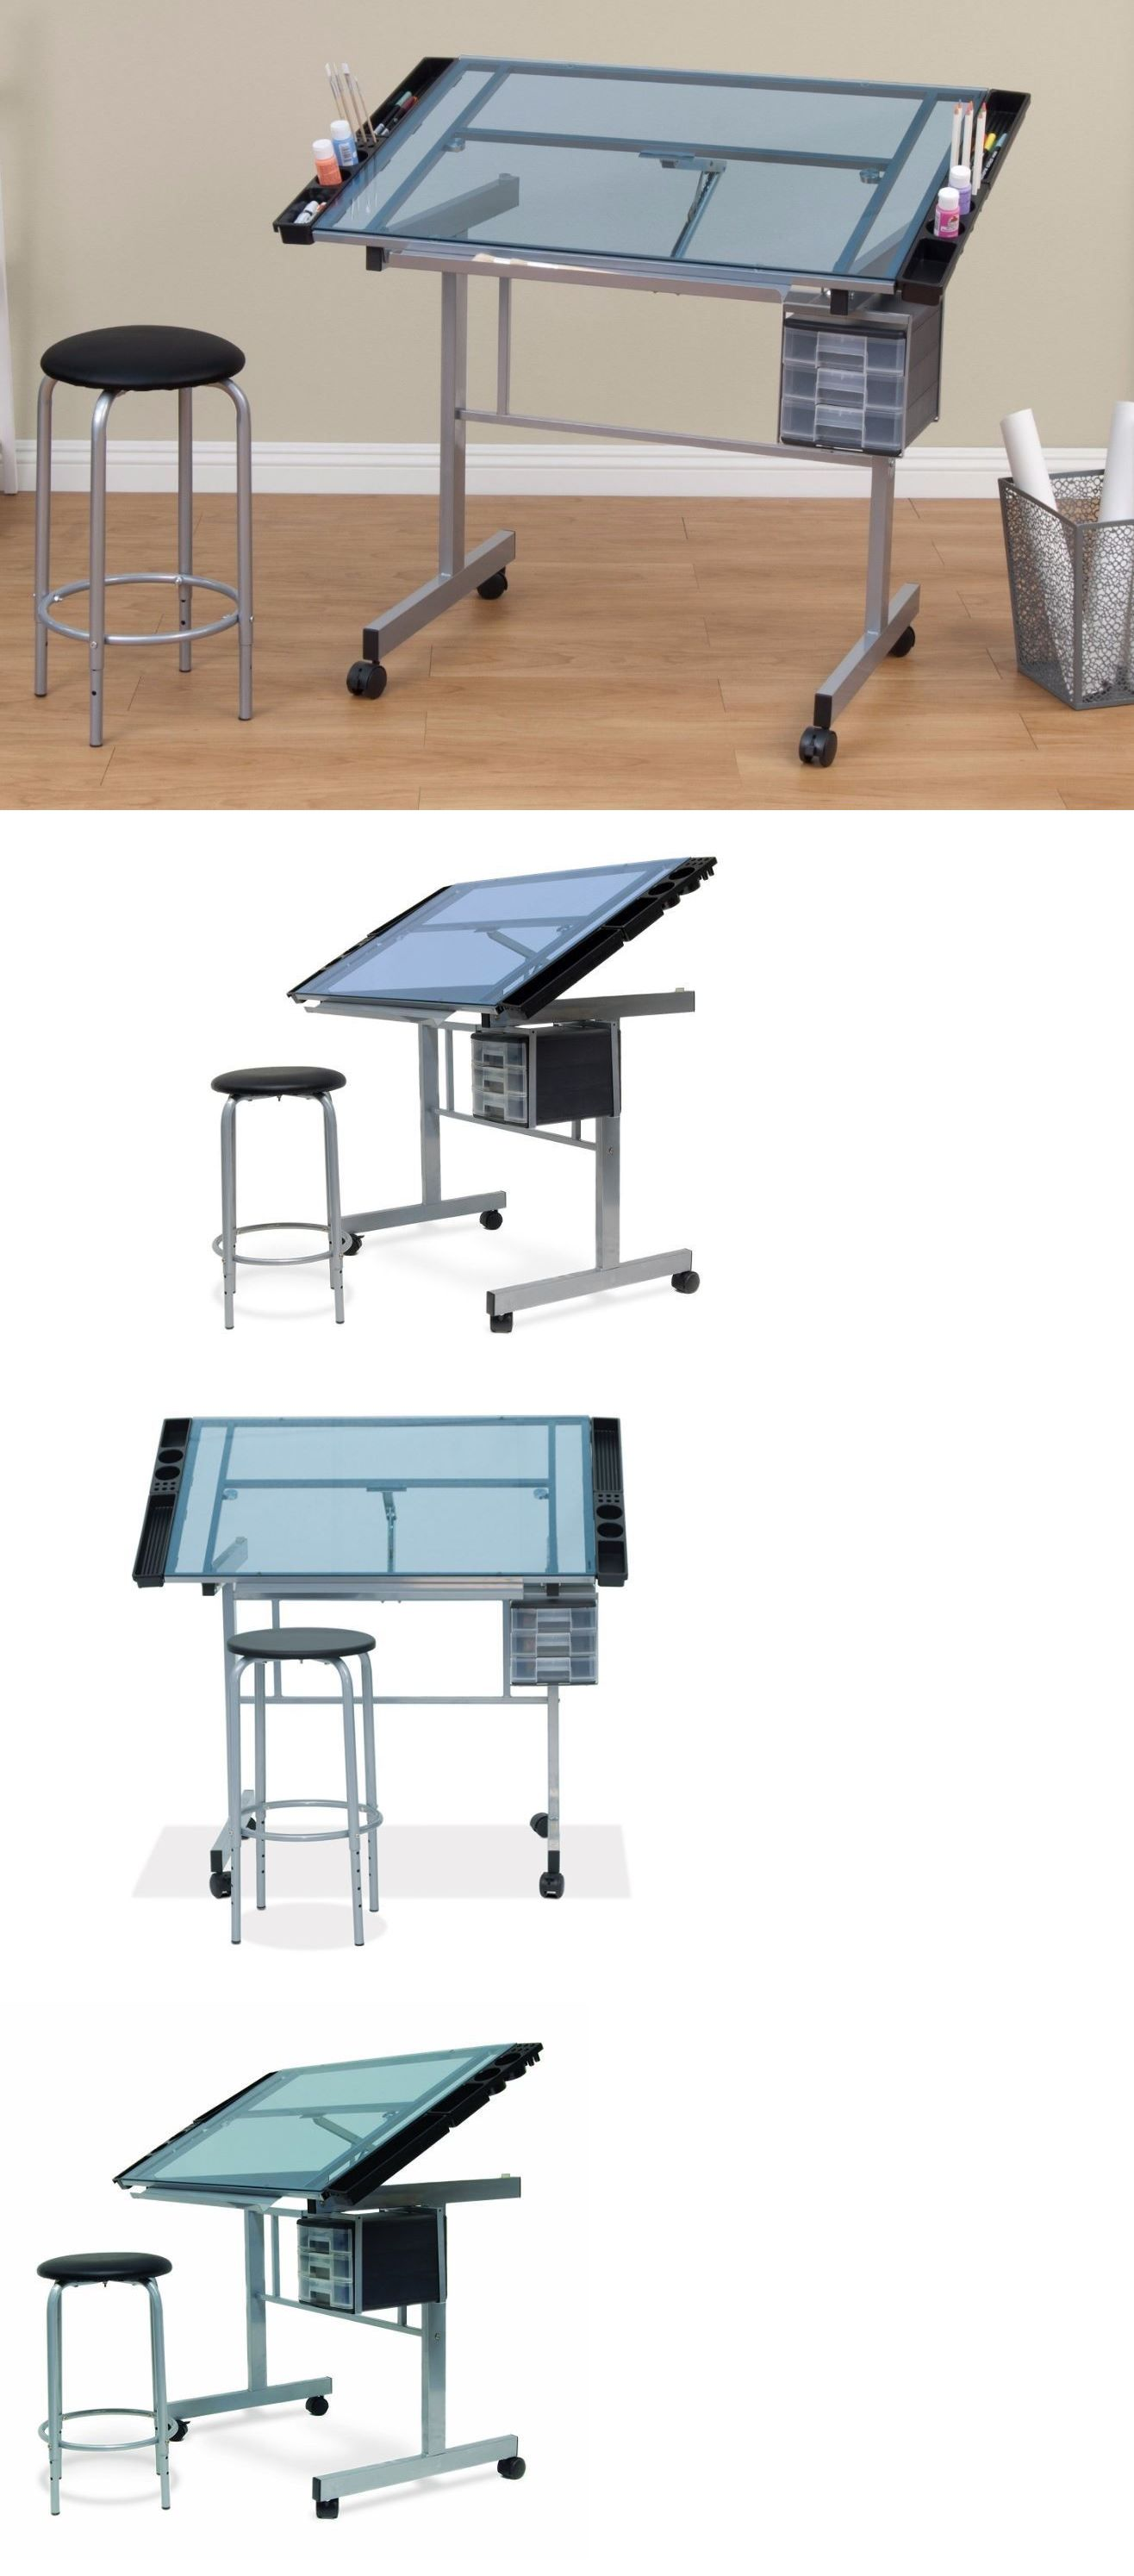 Drawing Boards And Tables 183083: Art Drafting Table For Adults, Kids  Adjustable Architect Glass